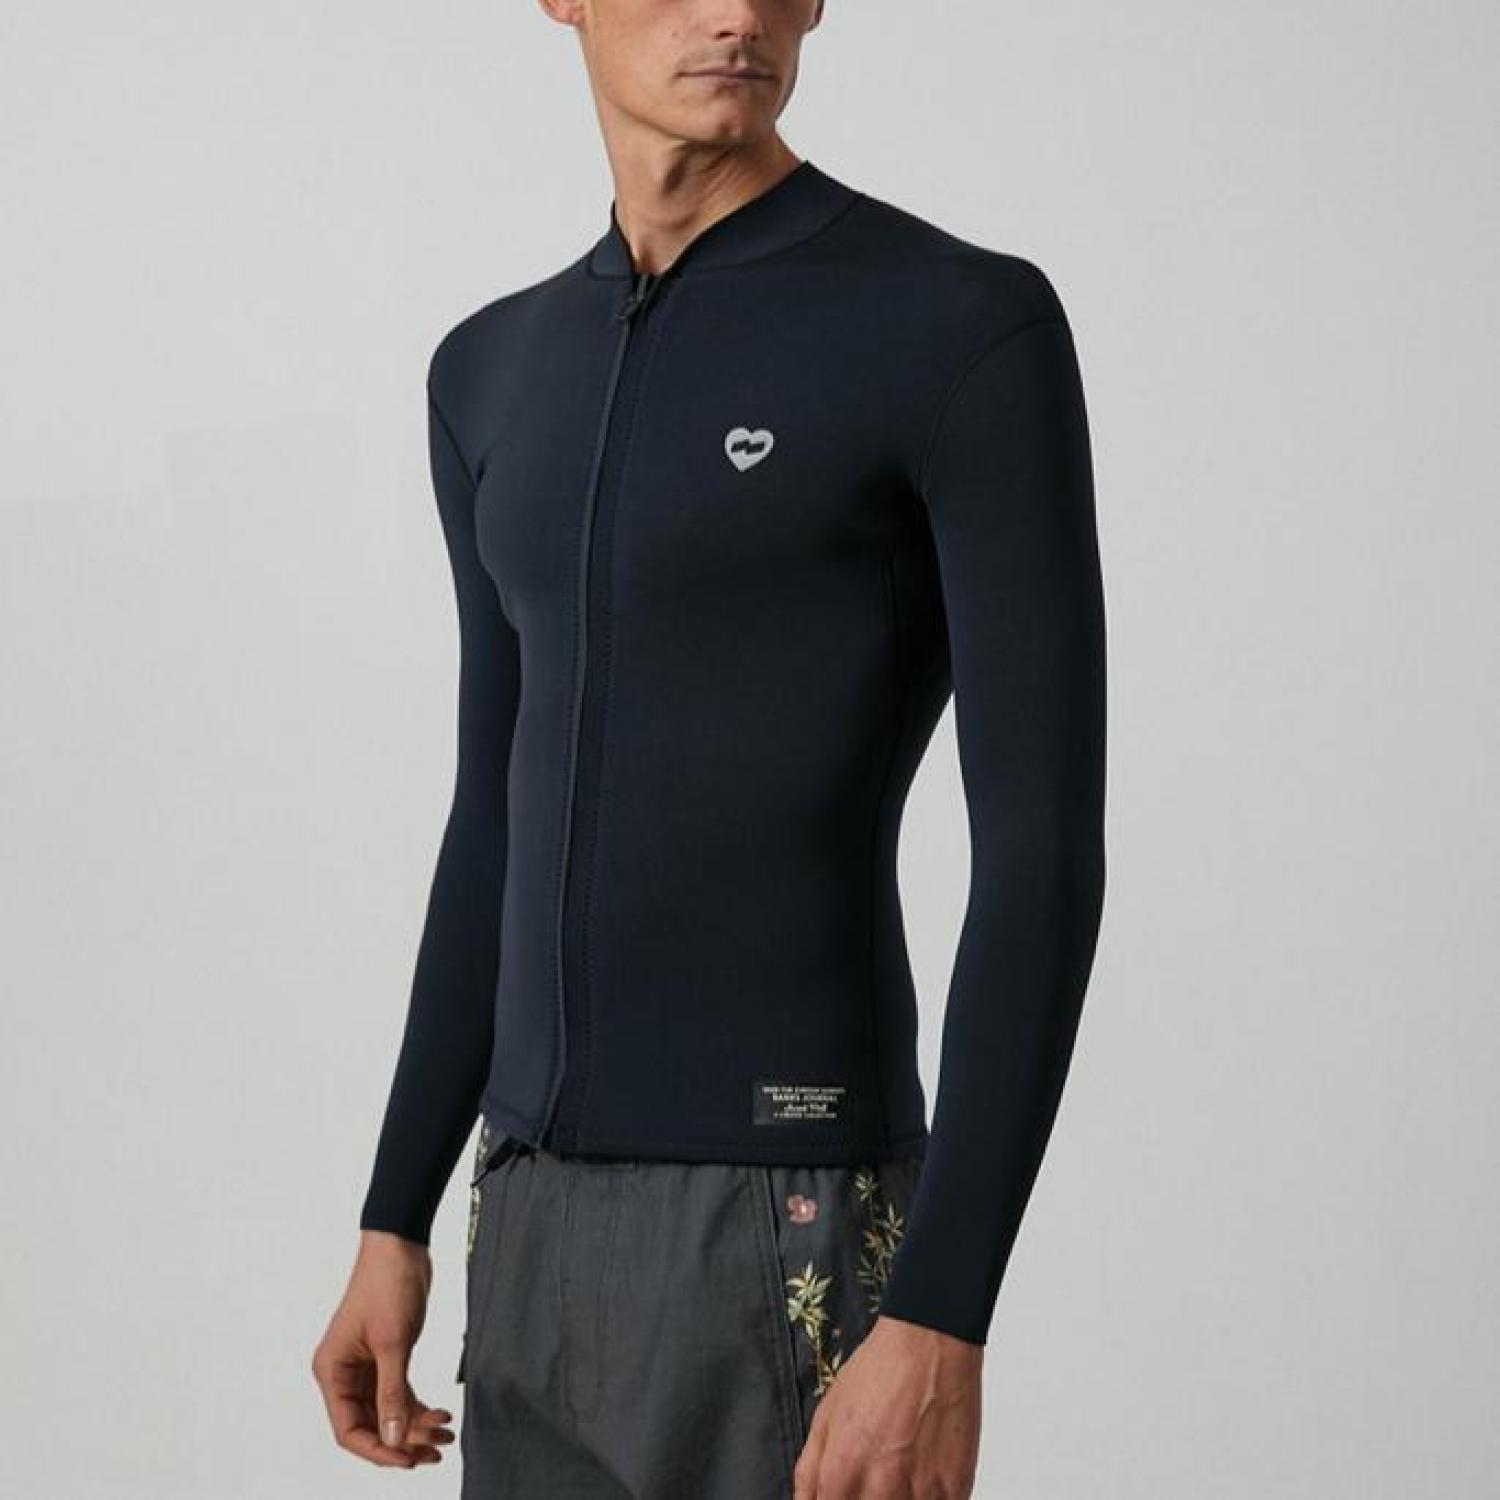 BANKS JARED MELL FRONT ZIP WETSUIT